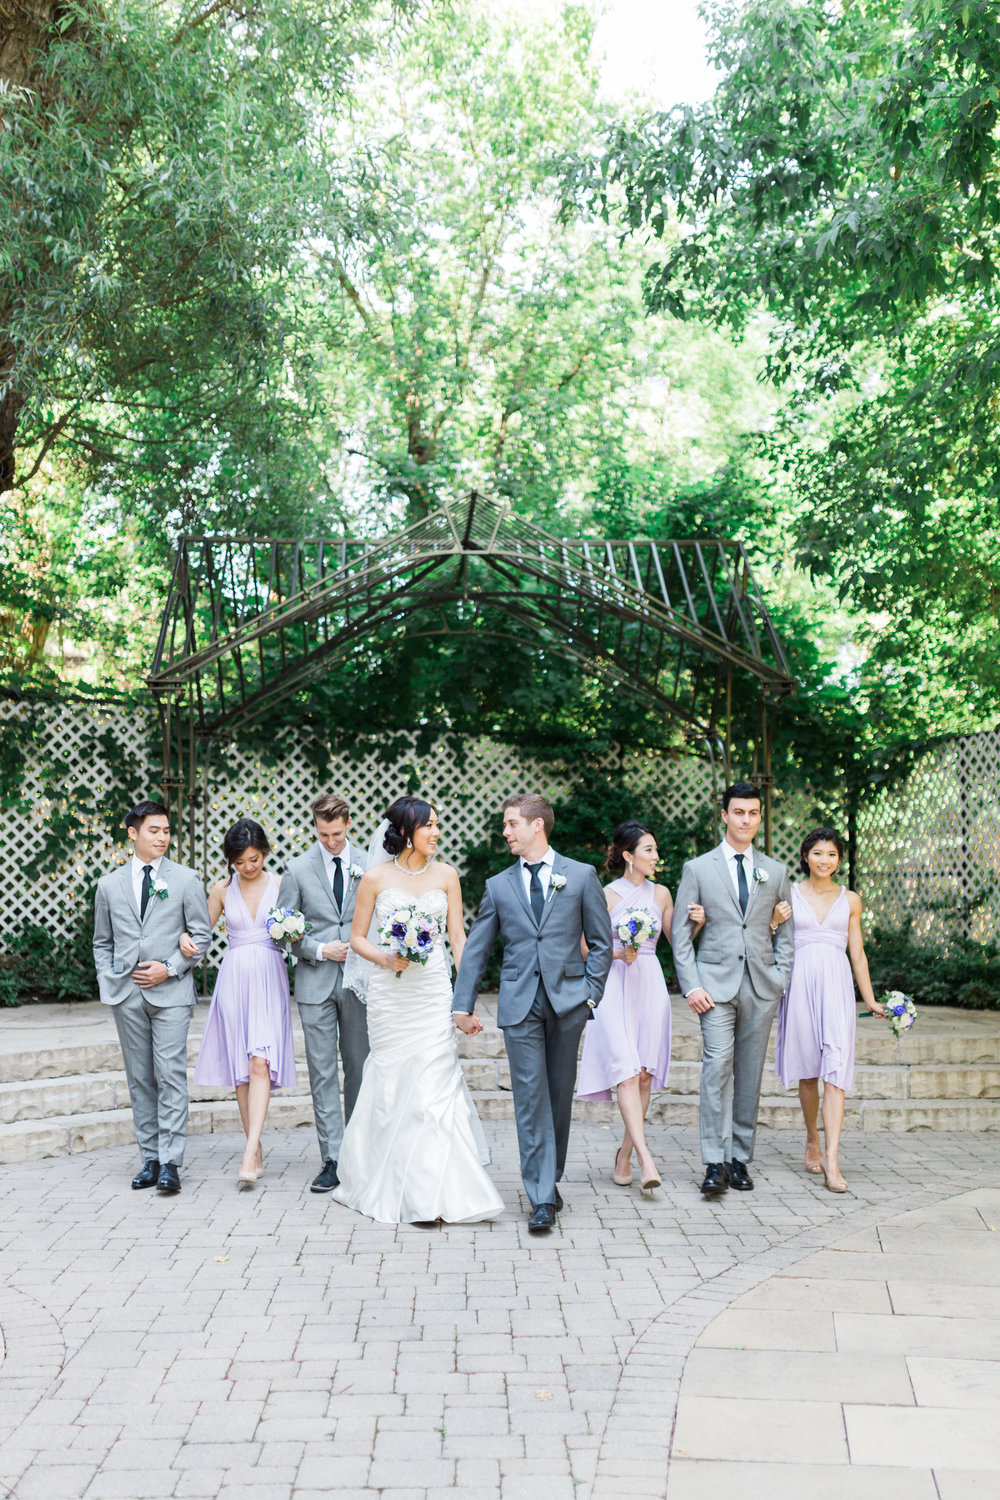 Toronto Fine Art Photographer - Old Mill Wedding - Bridal Party Photos-10.jpg